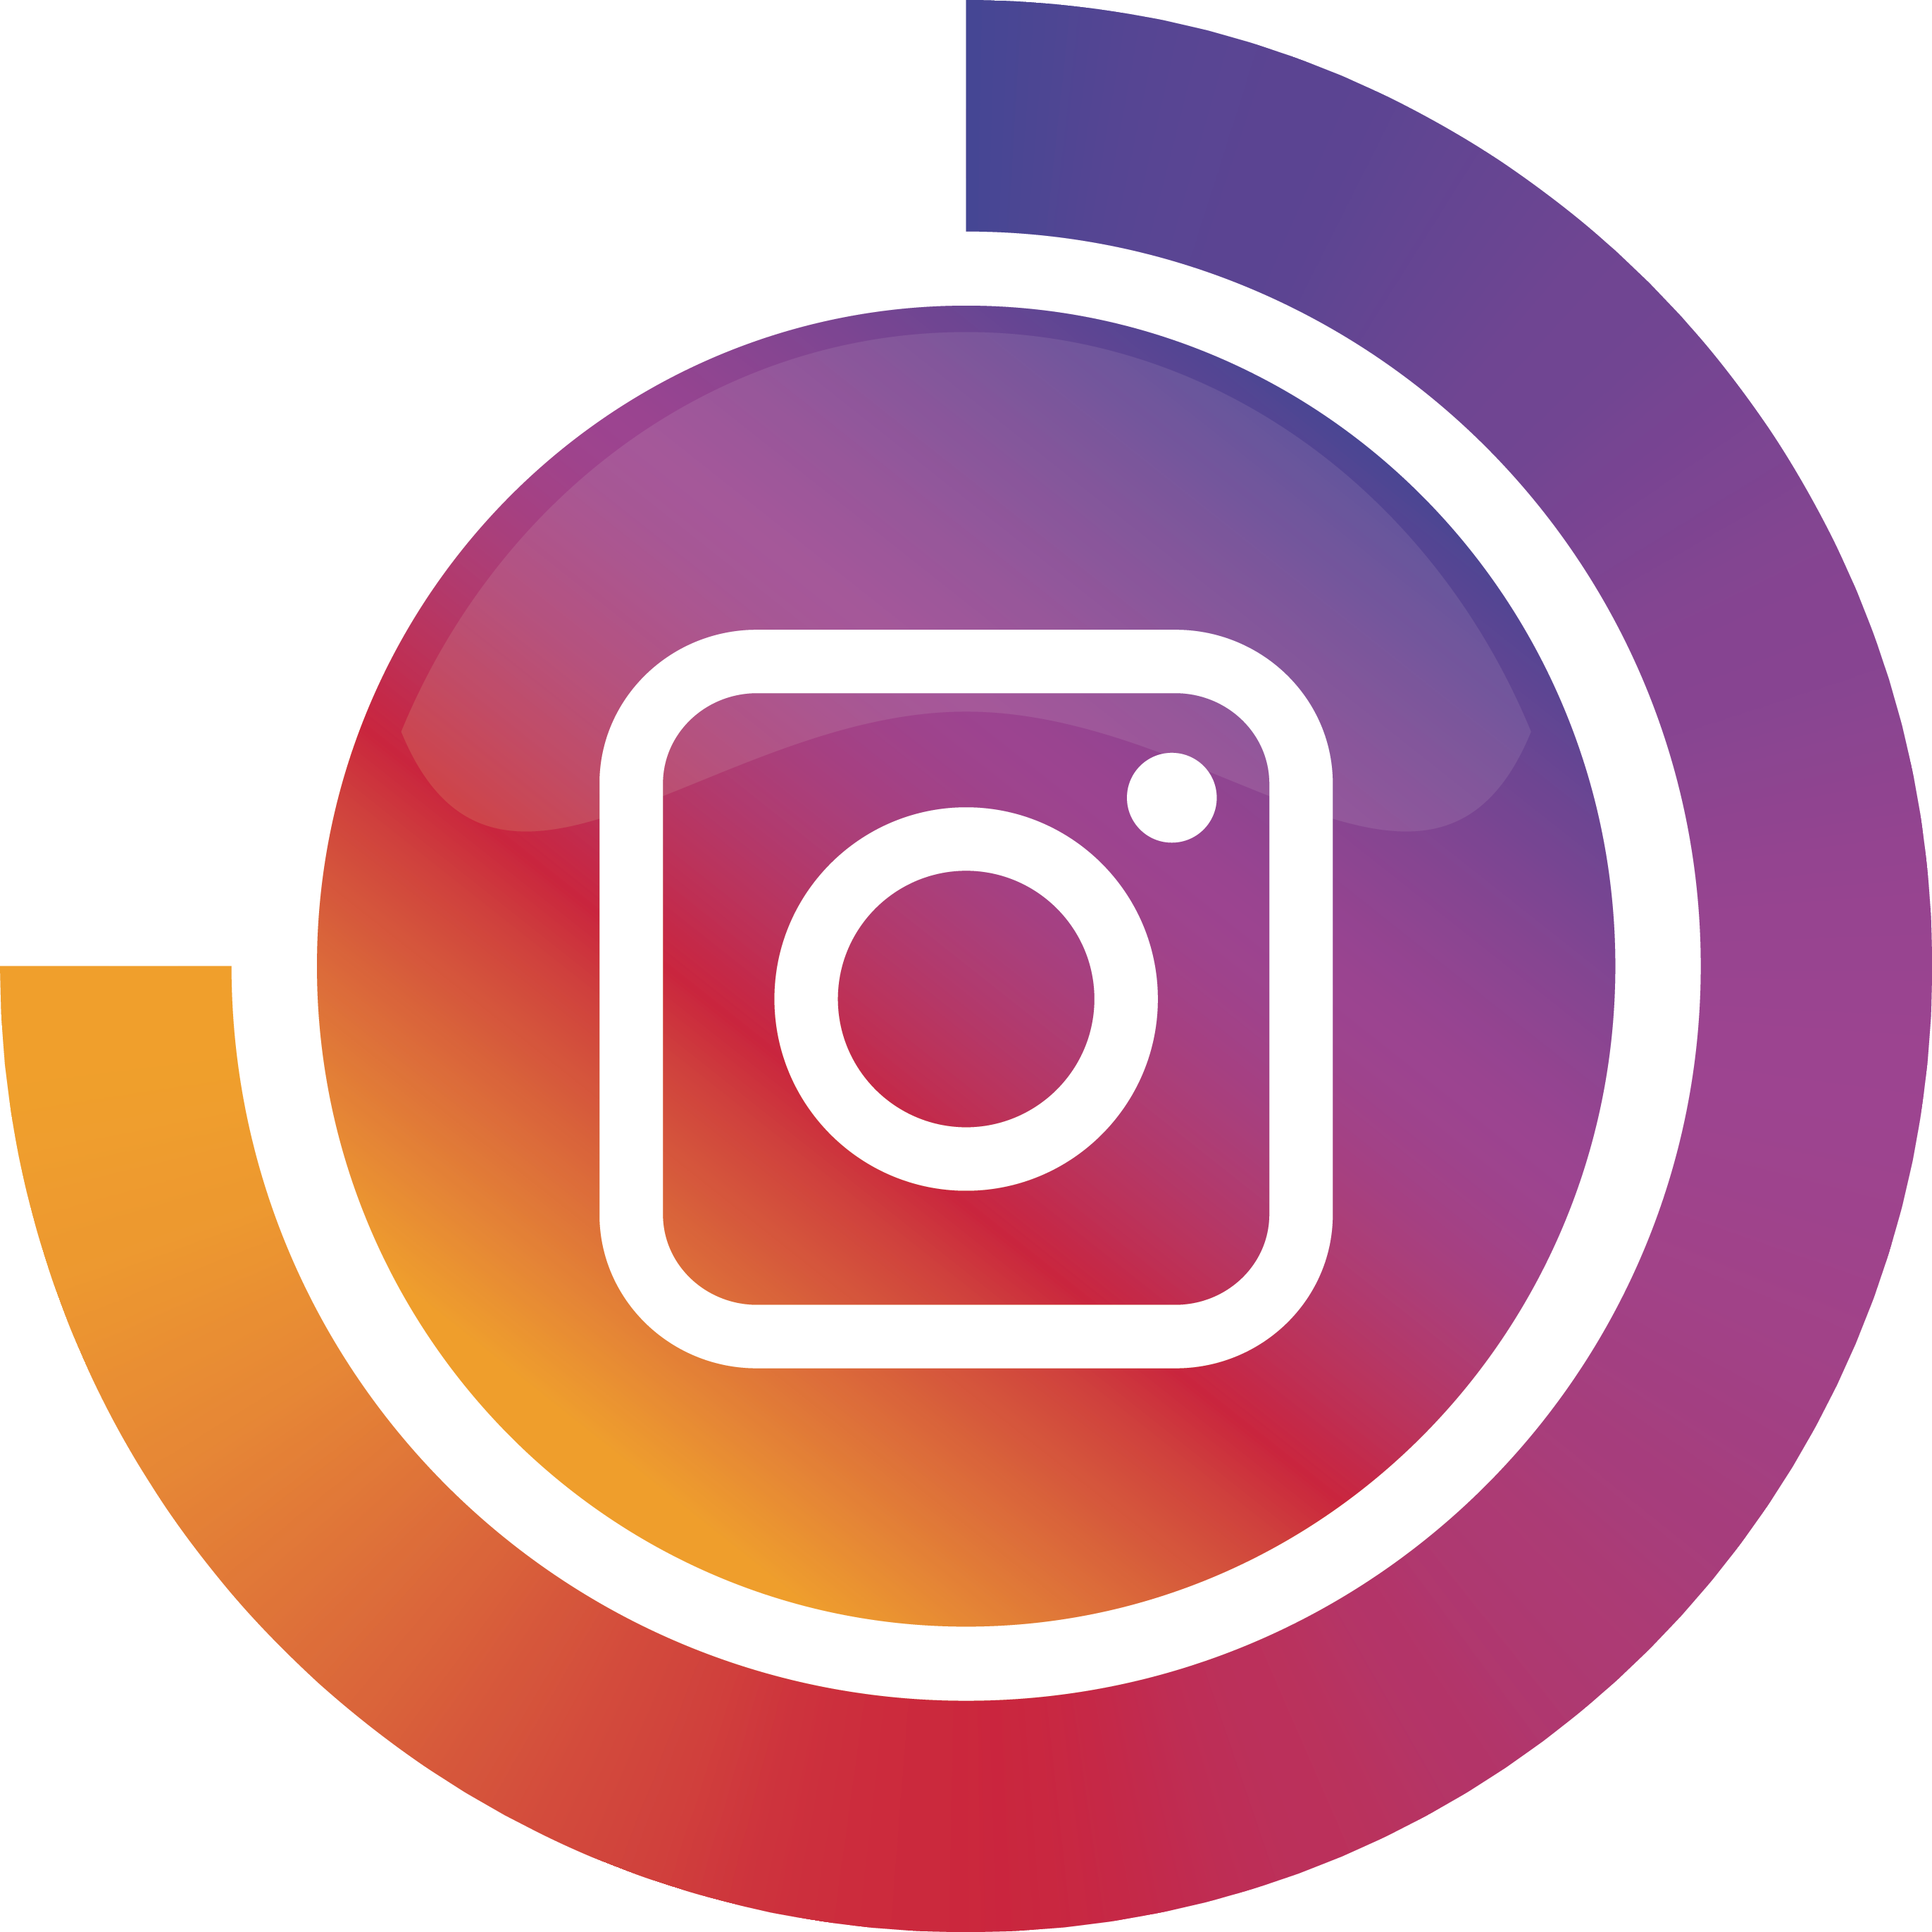 Facebook logo pink png. Instagram youtube photography camera